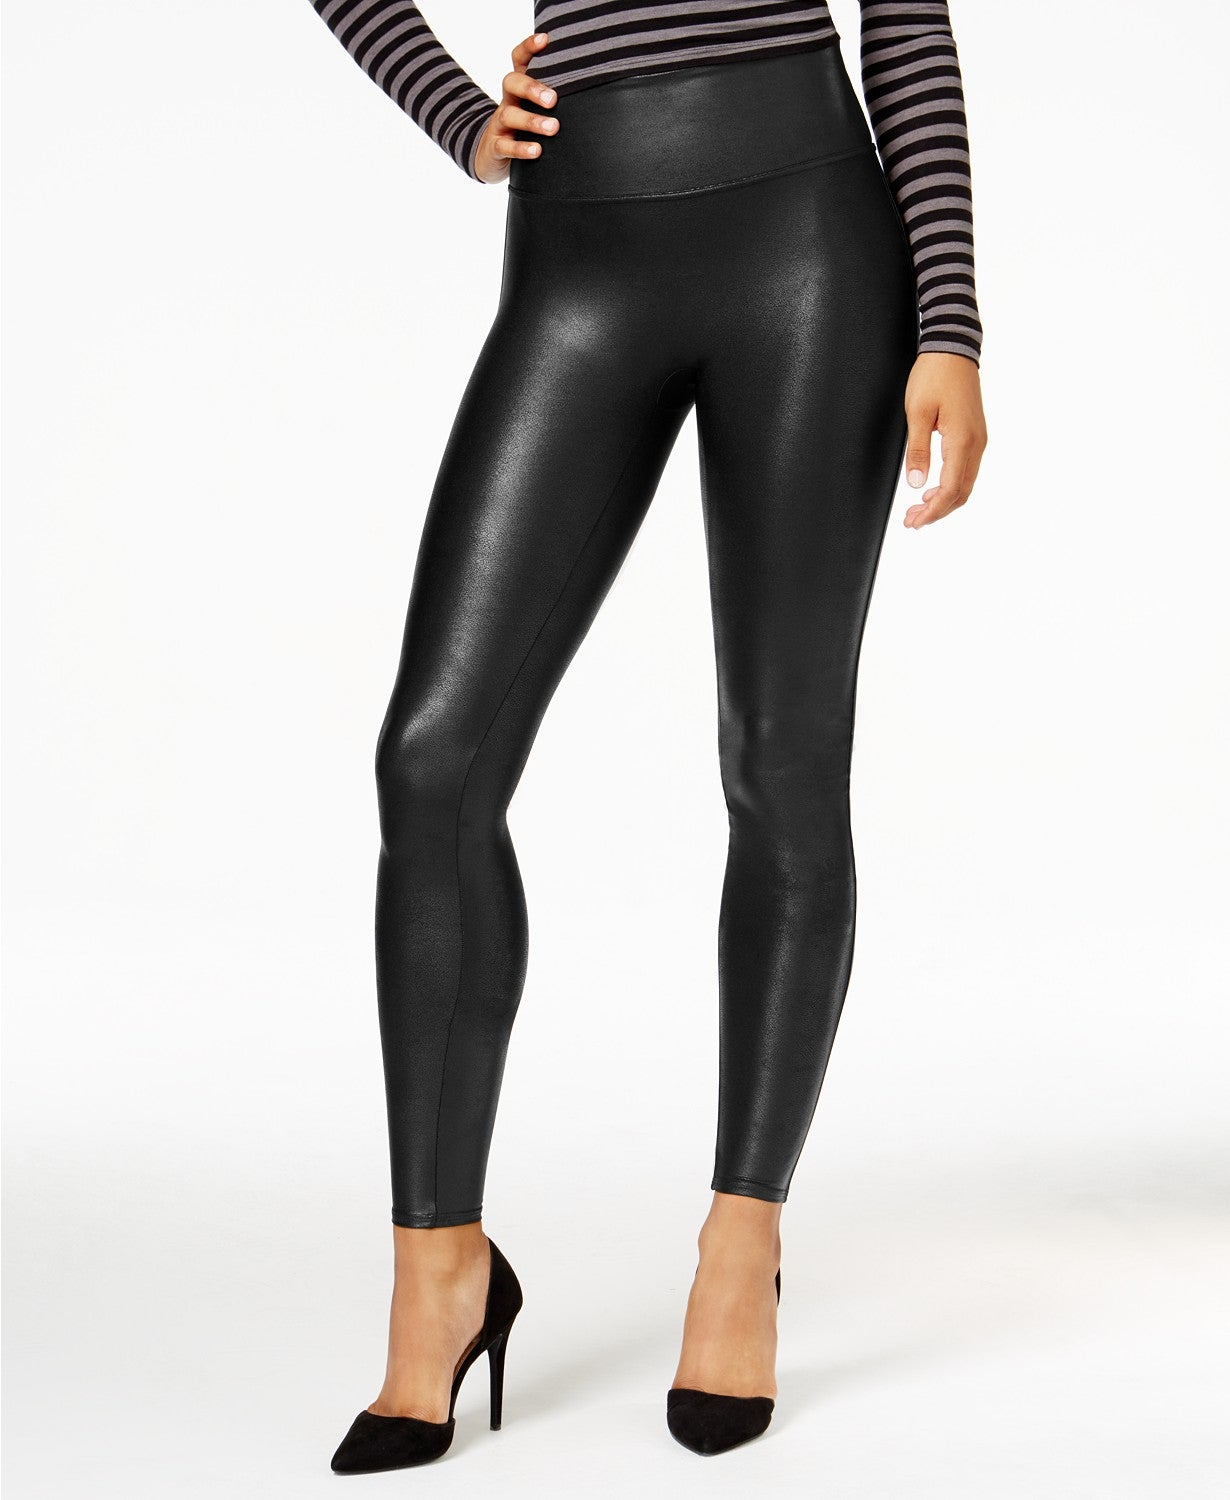 Spanx Faux-Leather Tummy Control Leggings